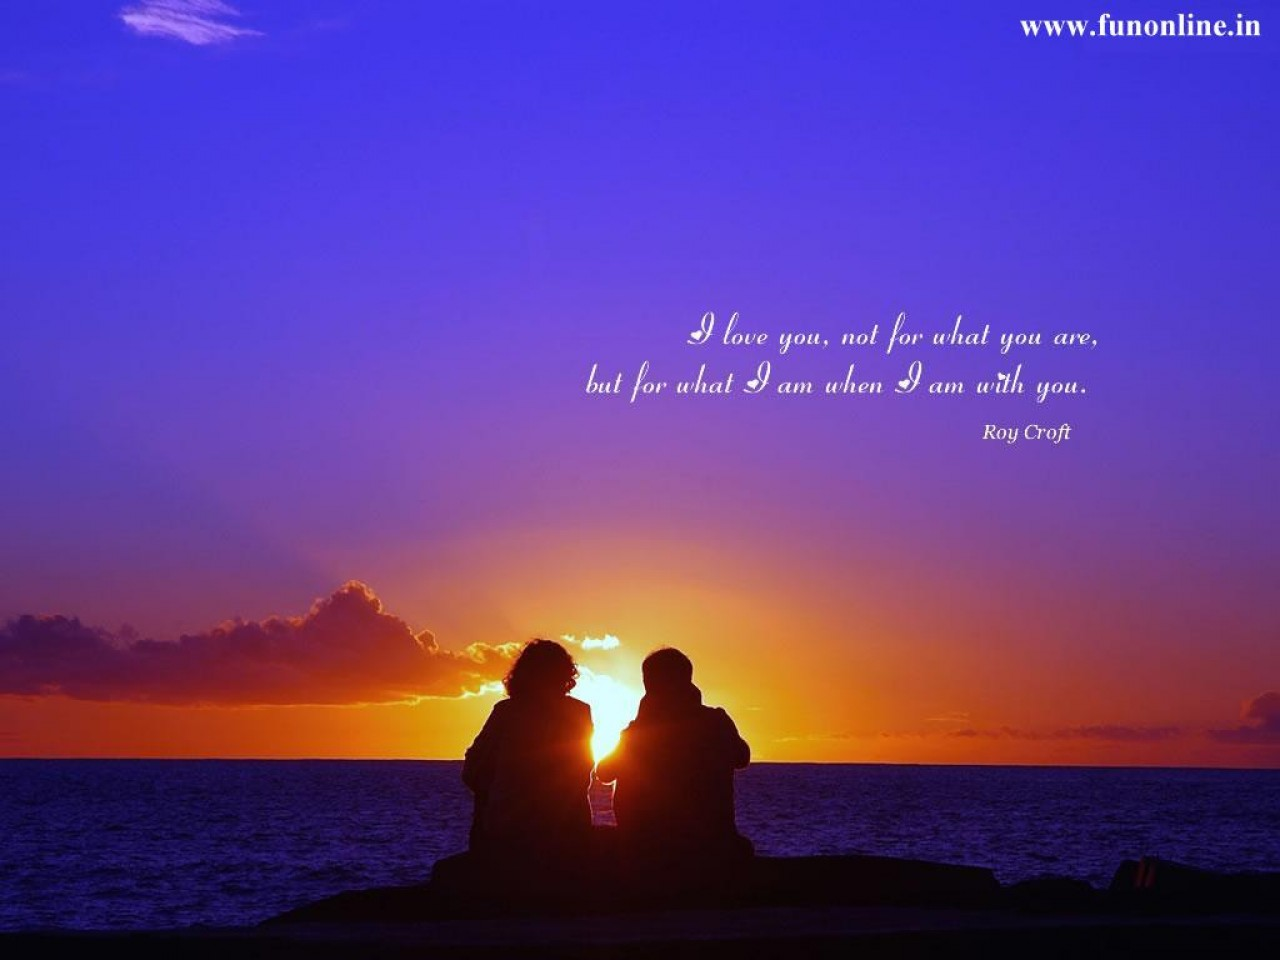 wallpapers love quotes wallp[apers sad love quotes wallpapers 1280x960